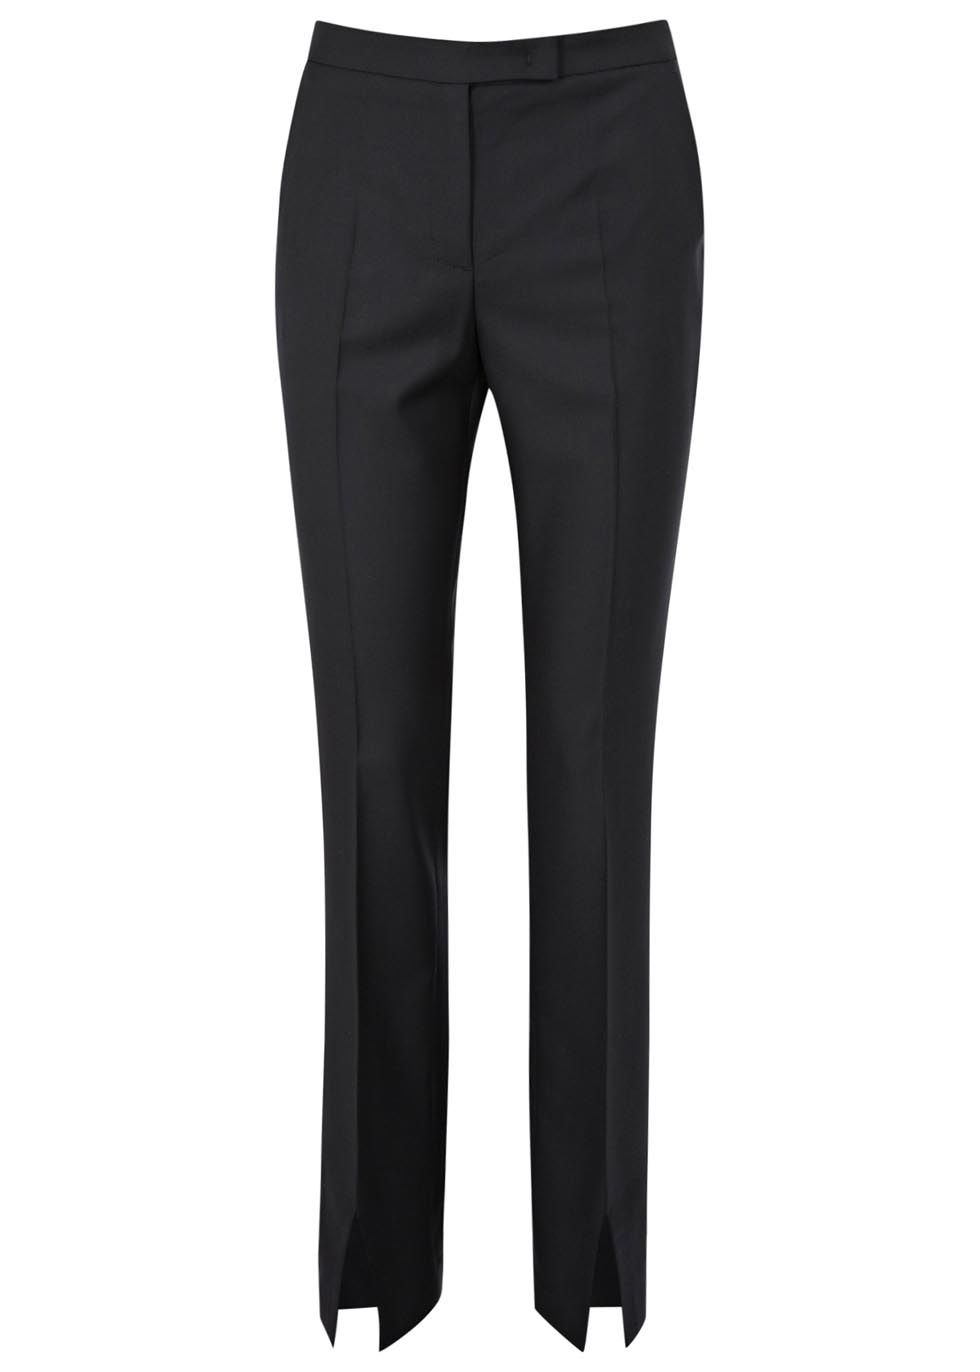 KARL LAGERFELD black wool twill trousers Slim leg, two side slant pockets, pressed creases through front, two back slit pockets, slit cuffs Concealed zip, hook and button fastenings at front  100% wool; pocket lining: 49% acetate, 51% viscose �